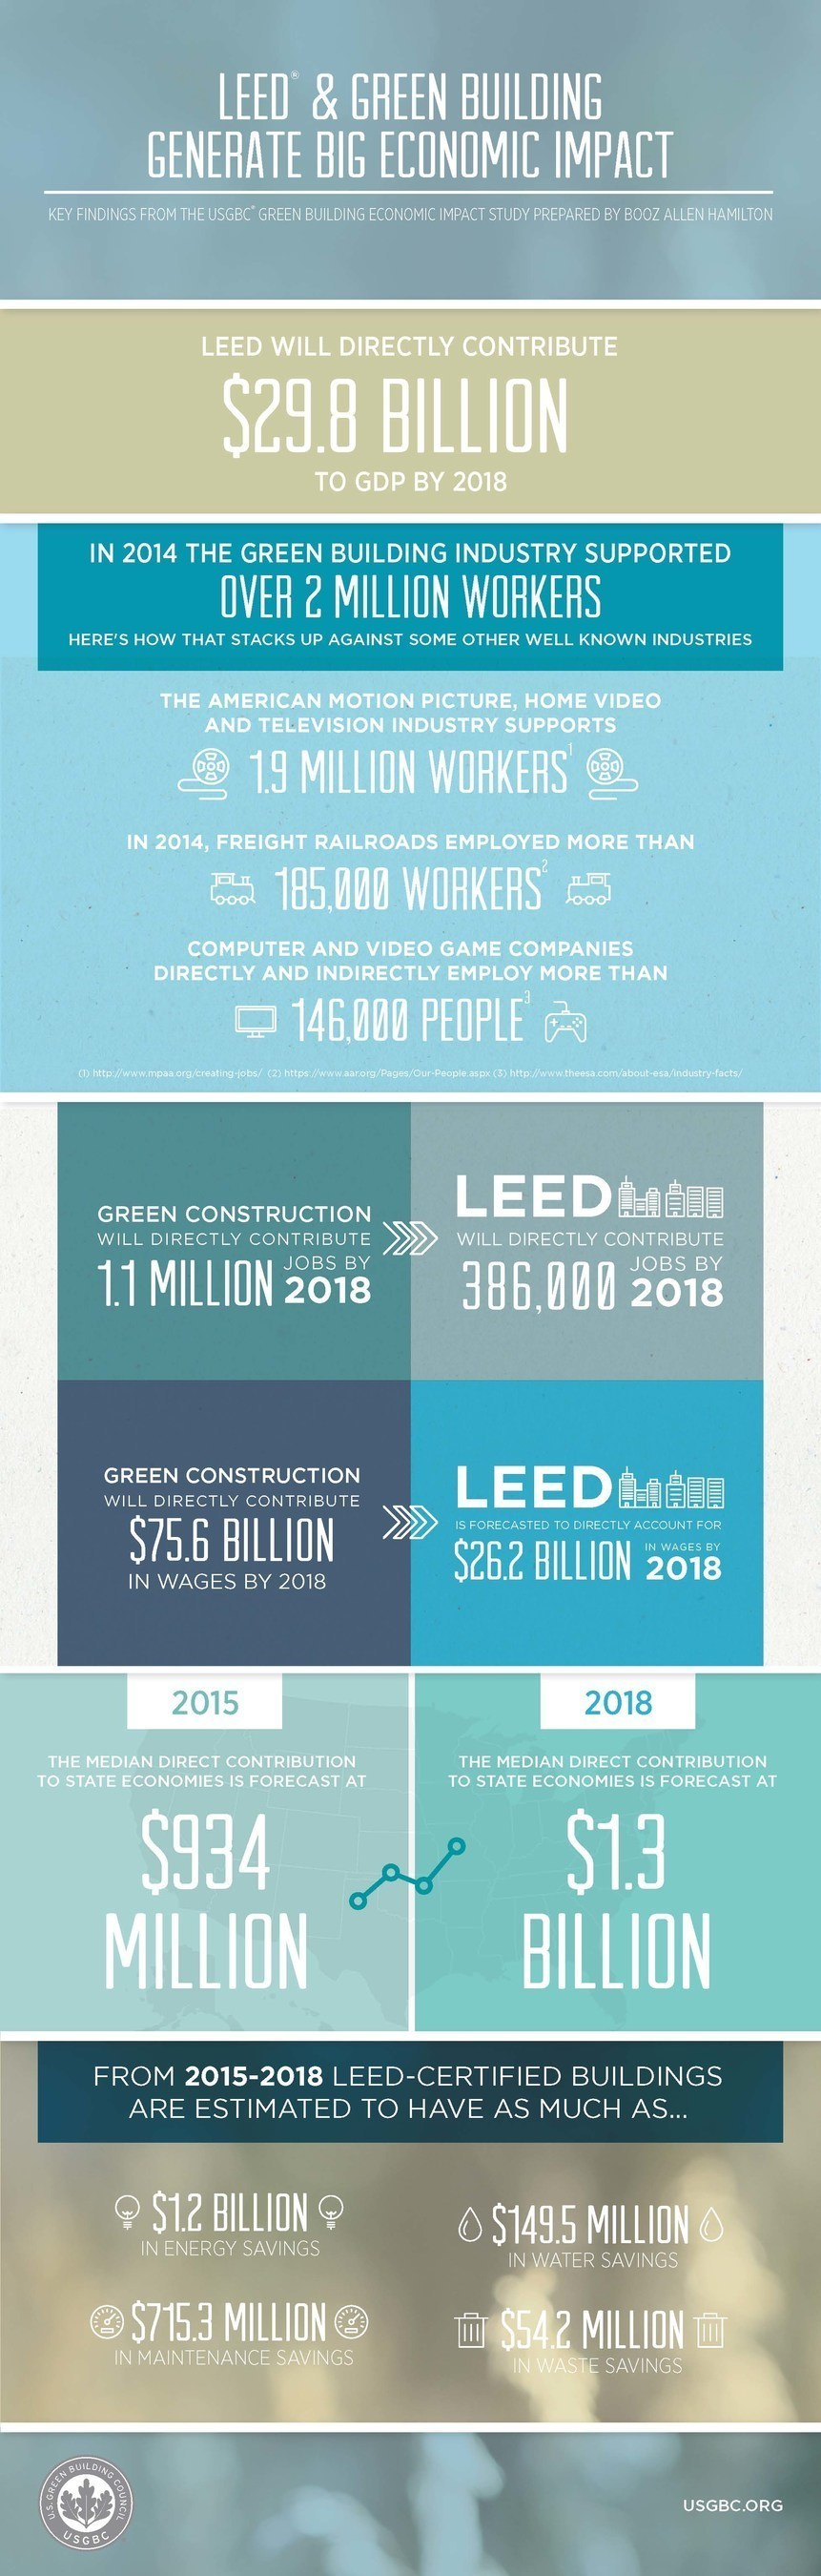 impact of green building construction